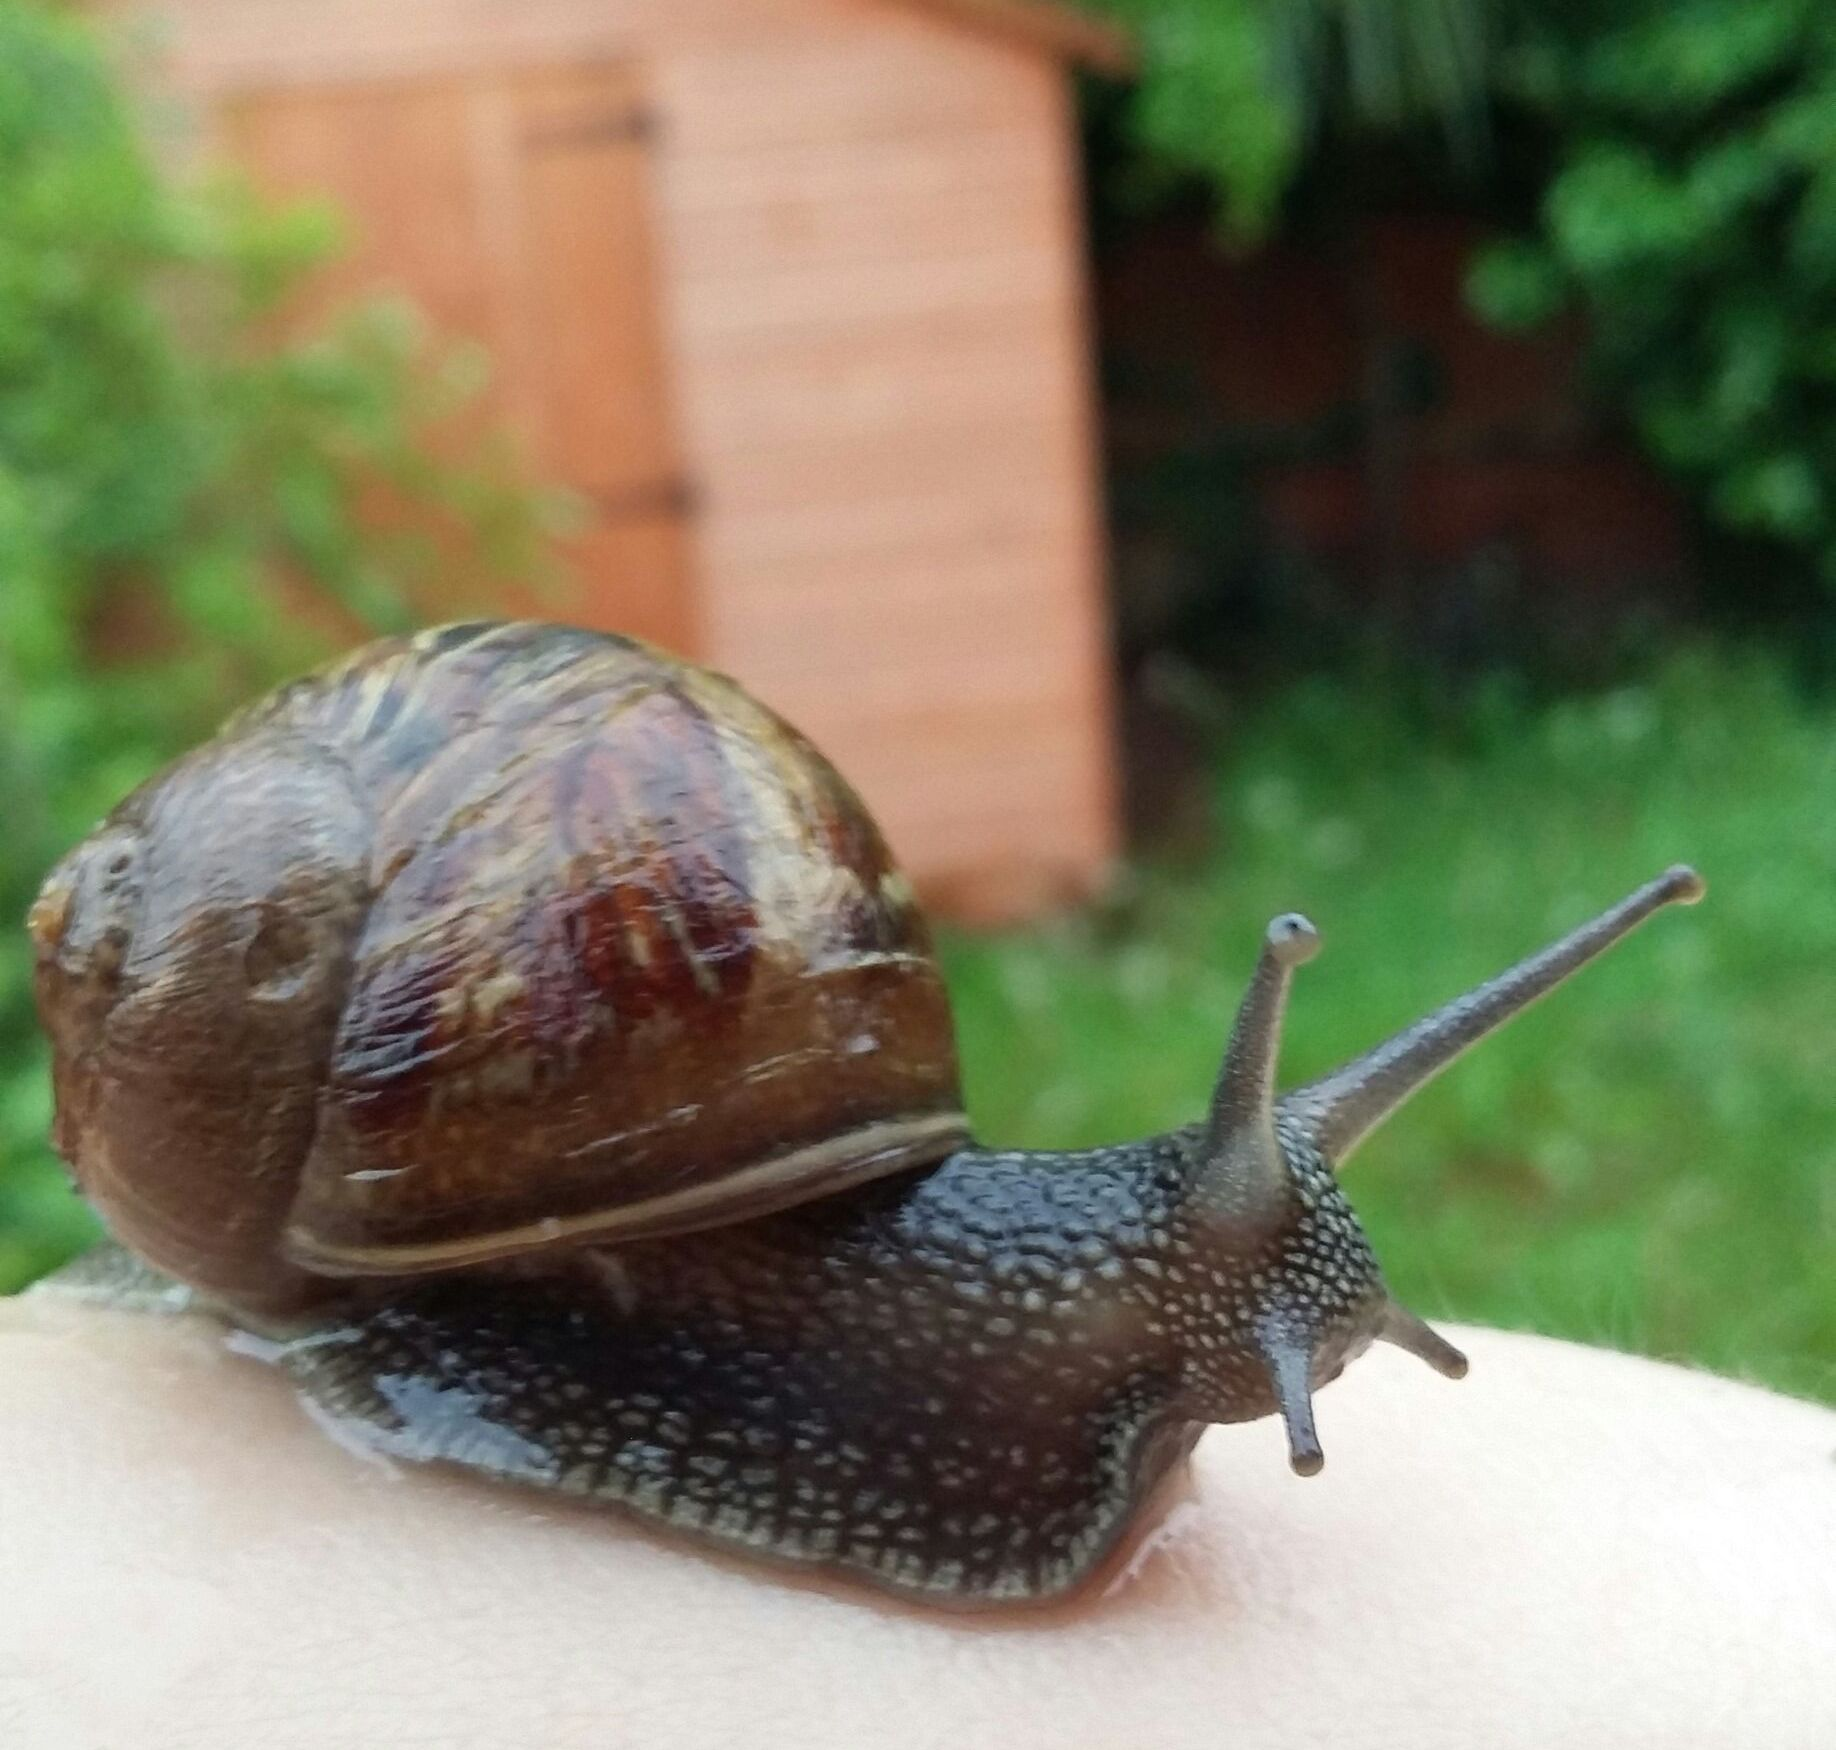 Snail on paw photo